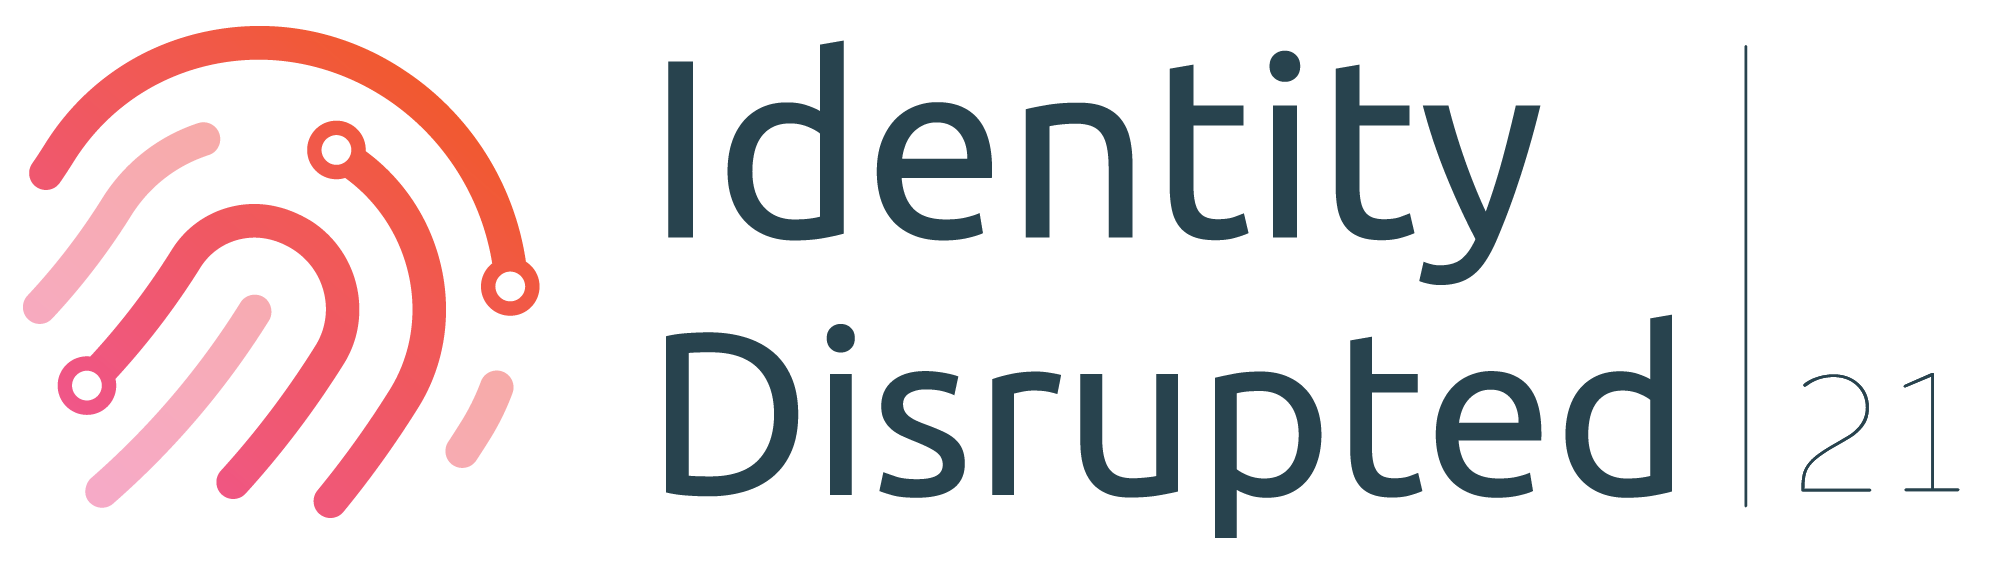 Identity Disrupted 2020 - logo colour.png